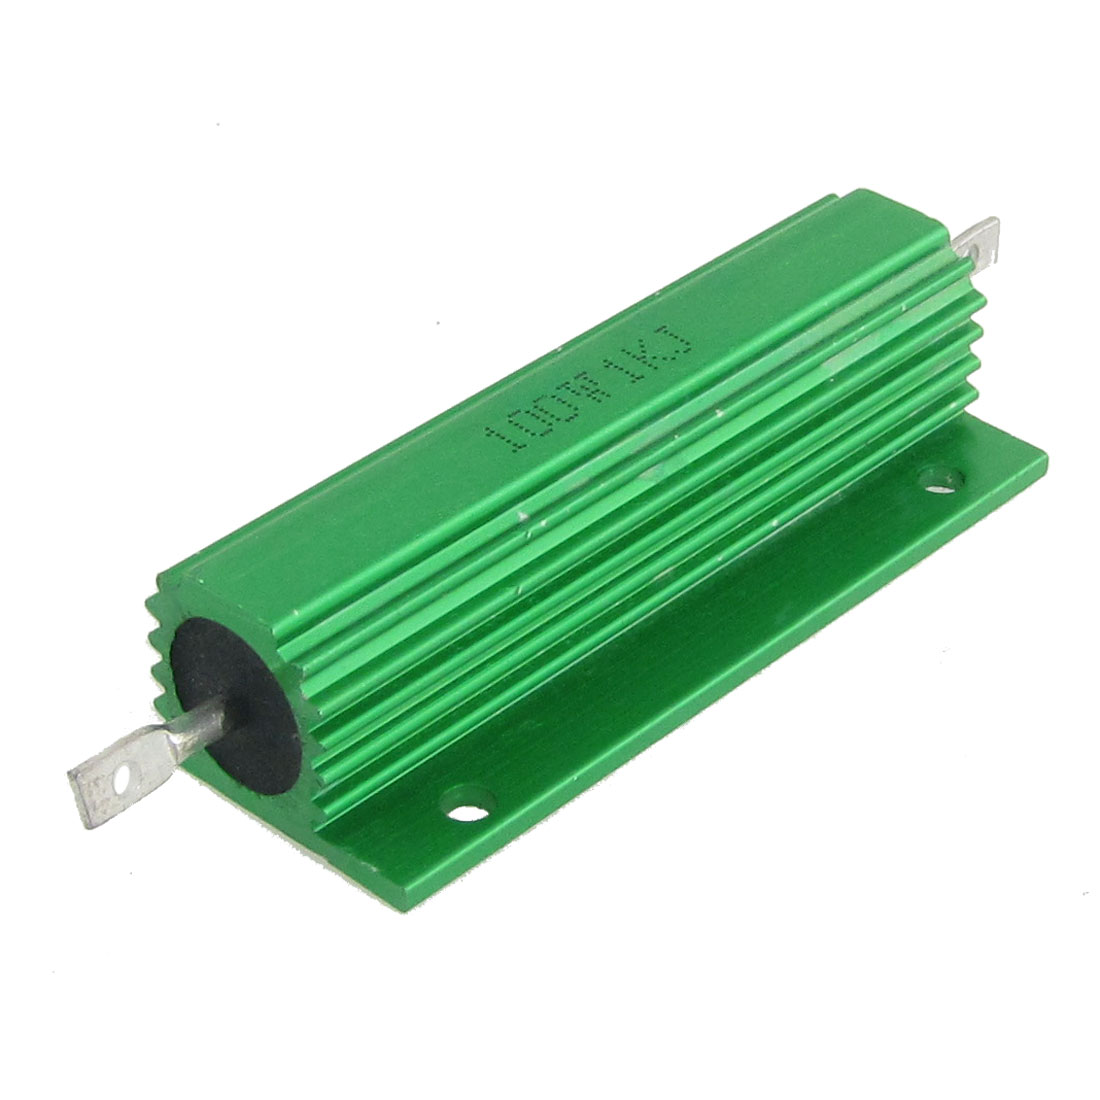 2 Pcs Chasis Mounted Green Aluminum Clad Wirewound Resistors 100W 1K Ohm 5%